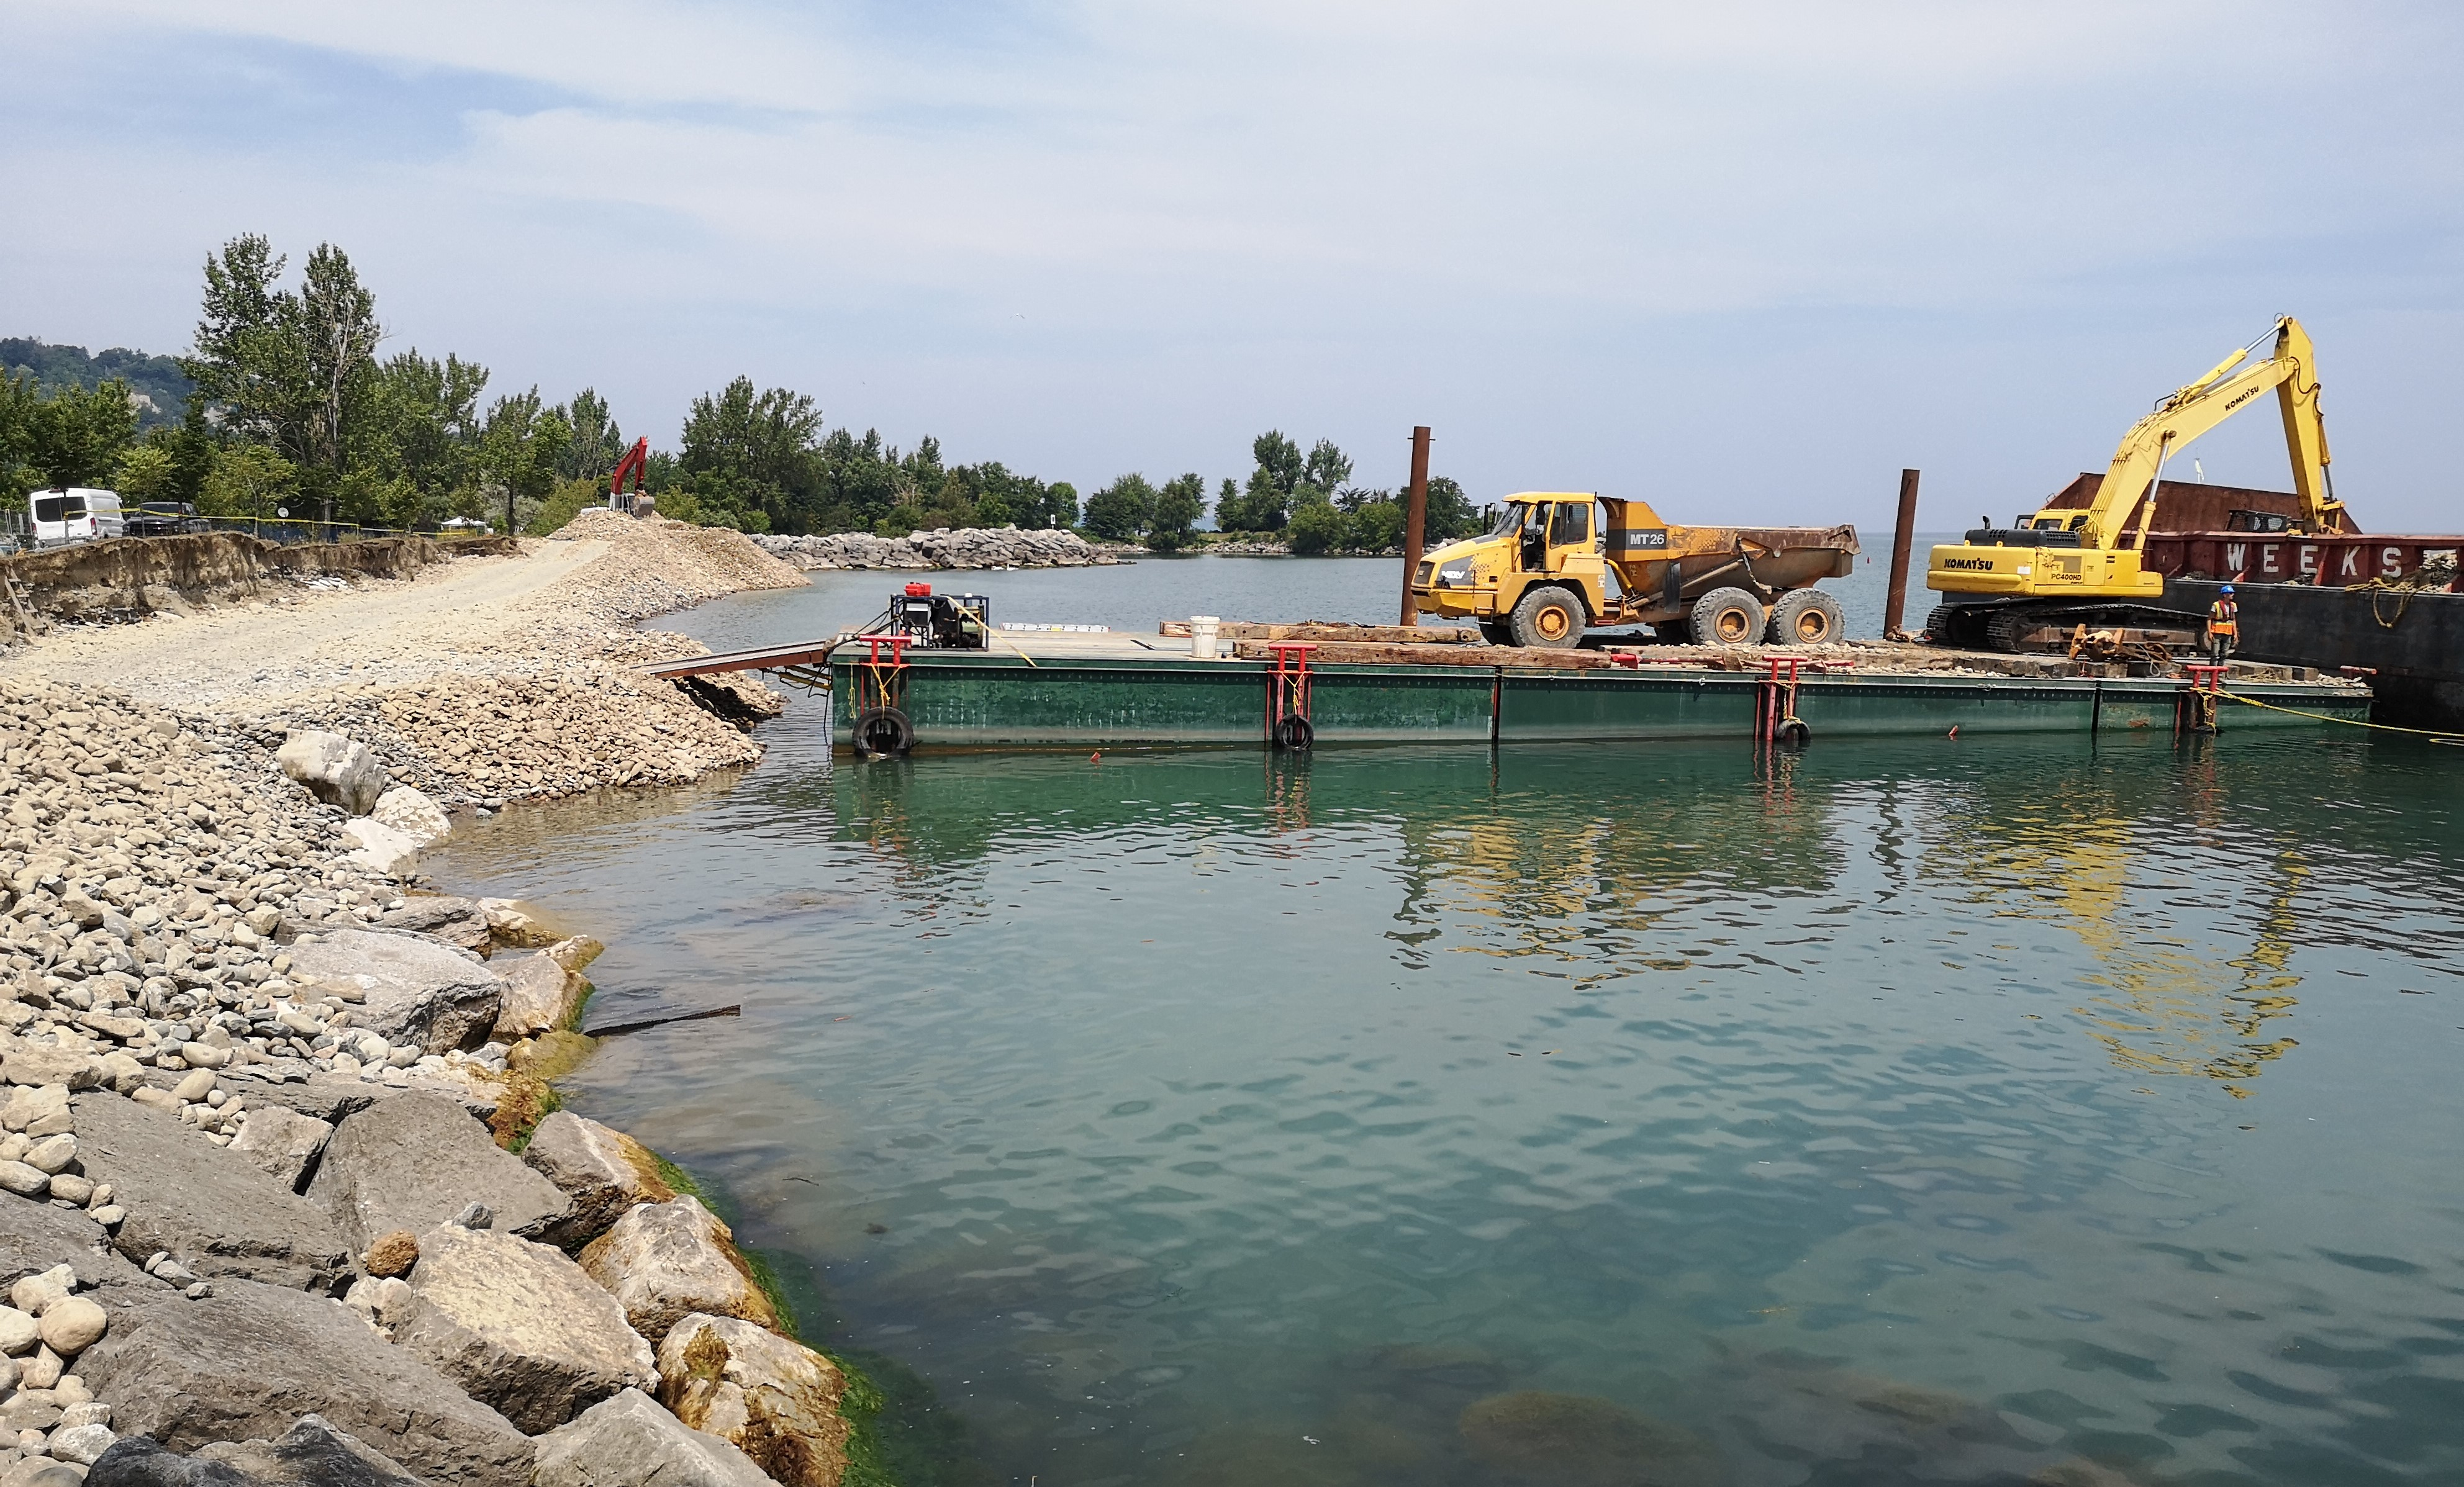 Delivery of cobble material by barge. Source: TRCA, 2018.